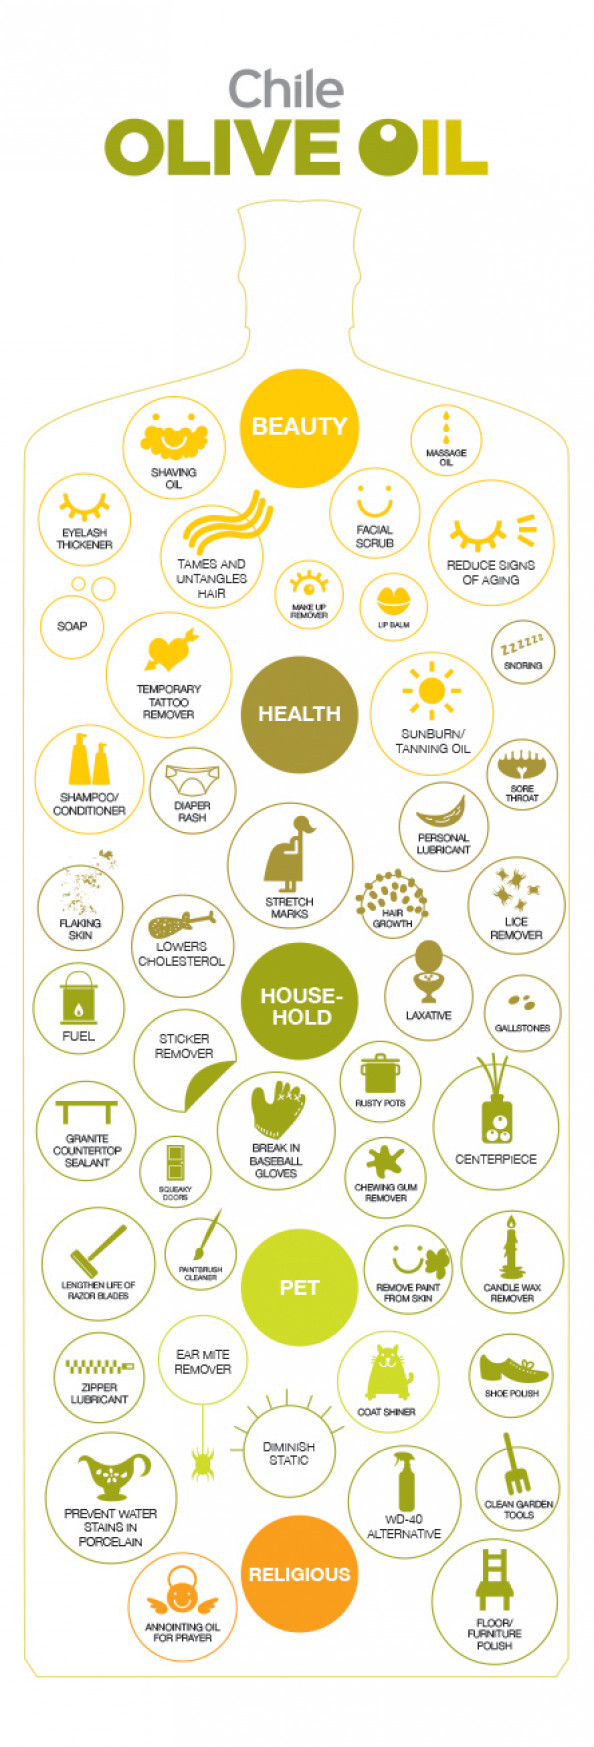 The uses of Olive Oil Infographic